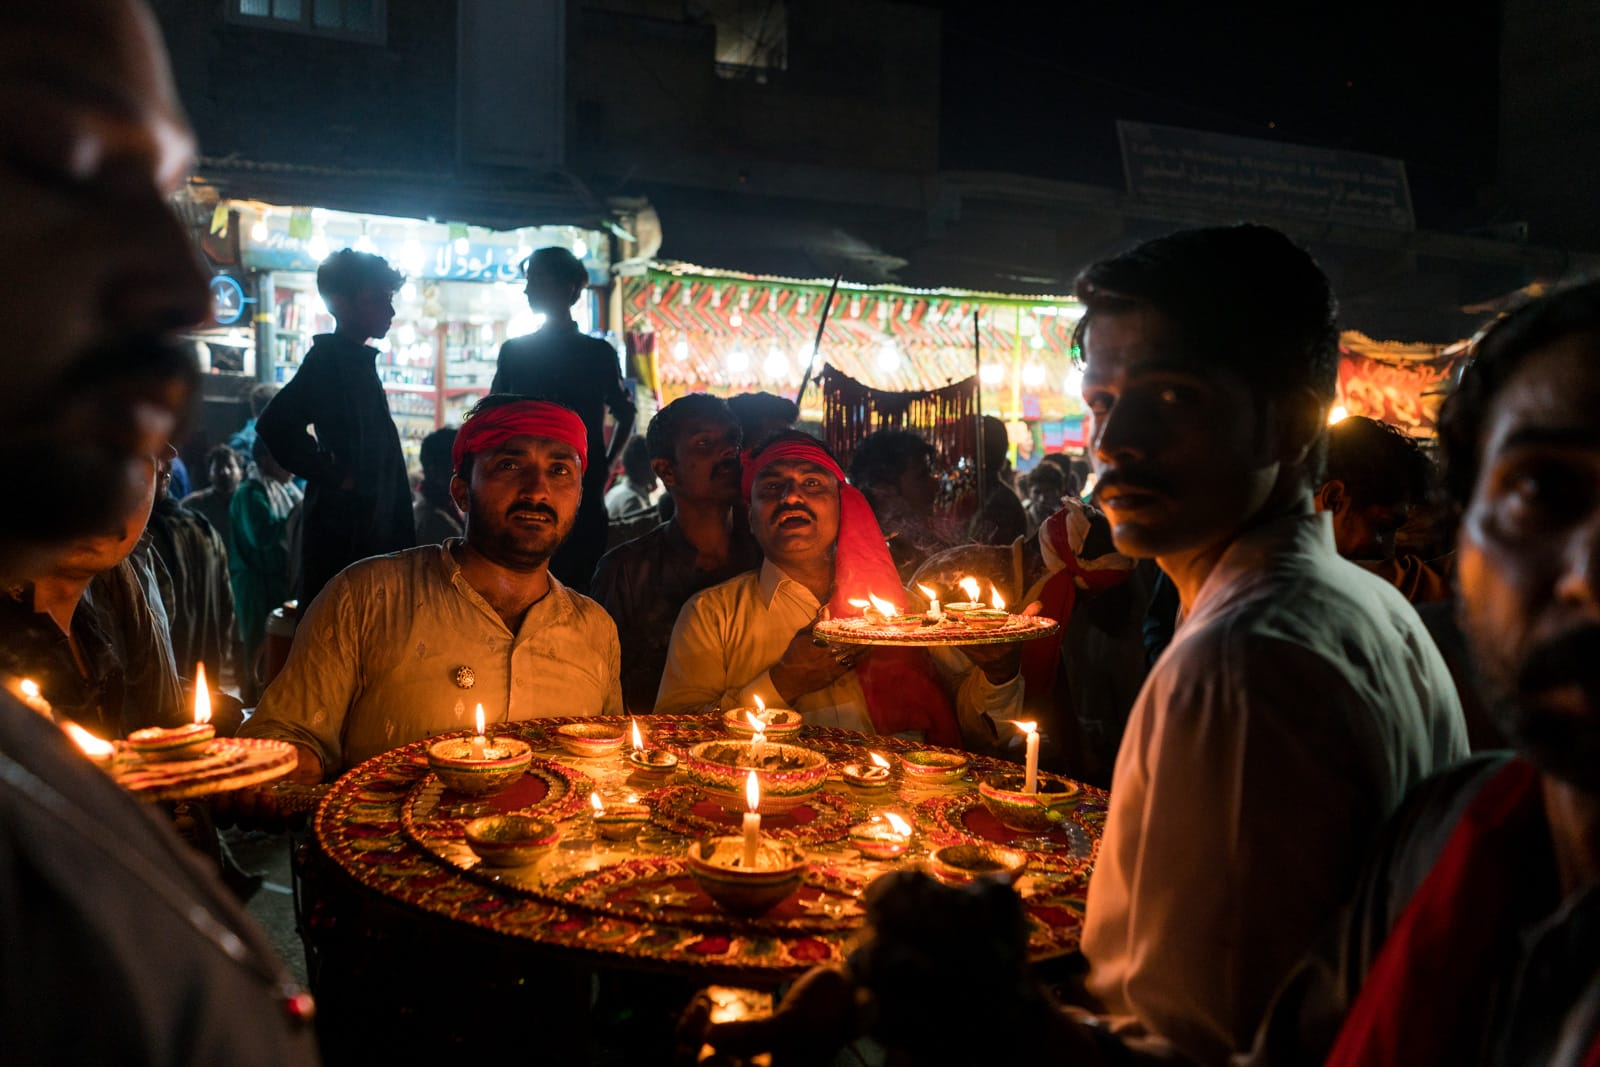 The Urs of Lal Shahbaz Qalandar in Sehwan, Pakistan - Men with candles on the streets at night - Lost With Purpose travel blog